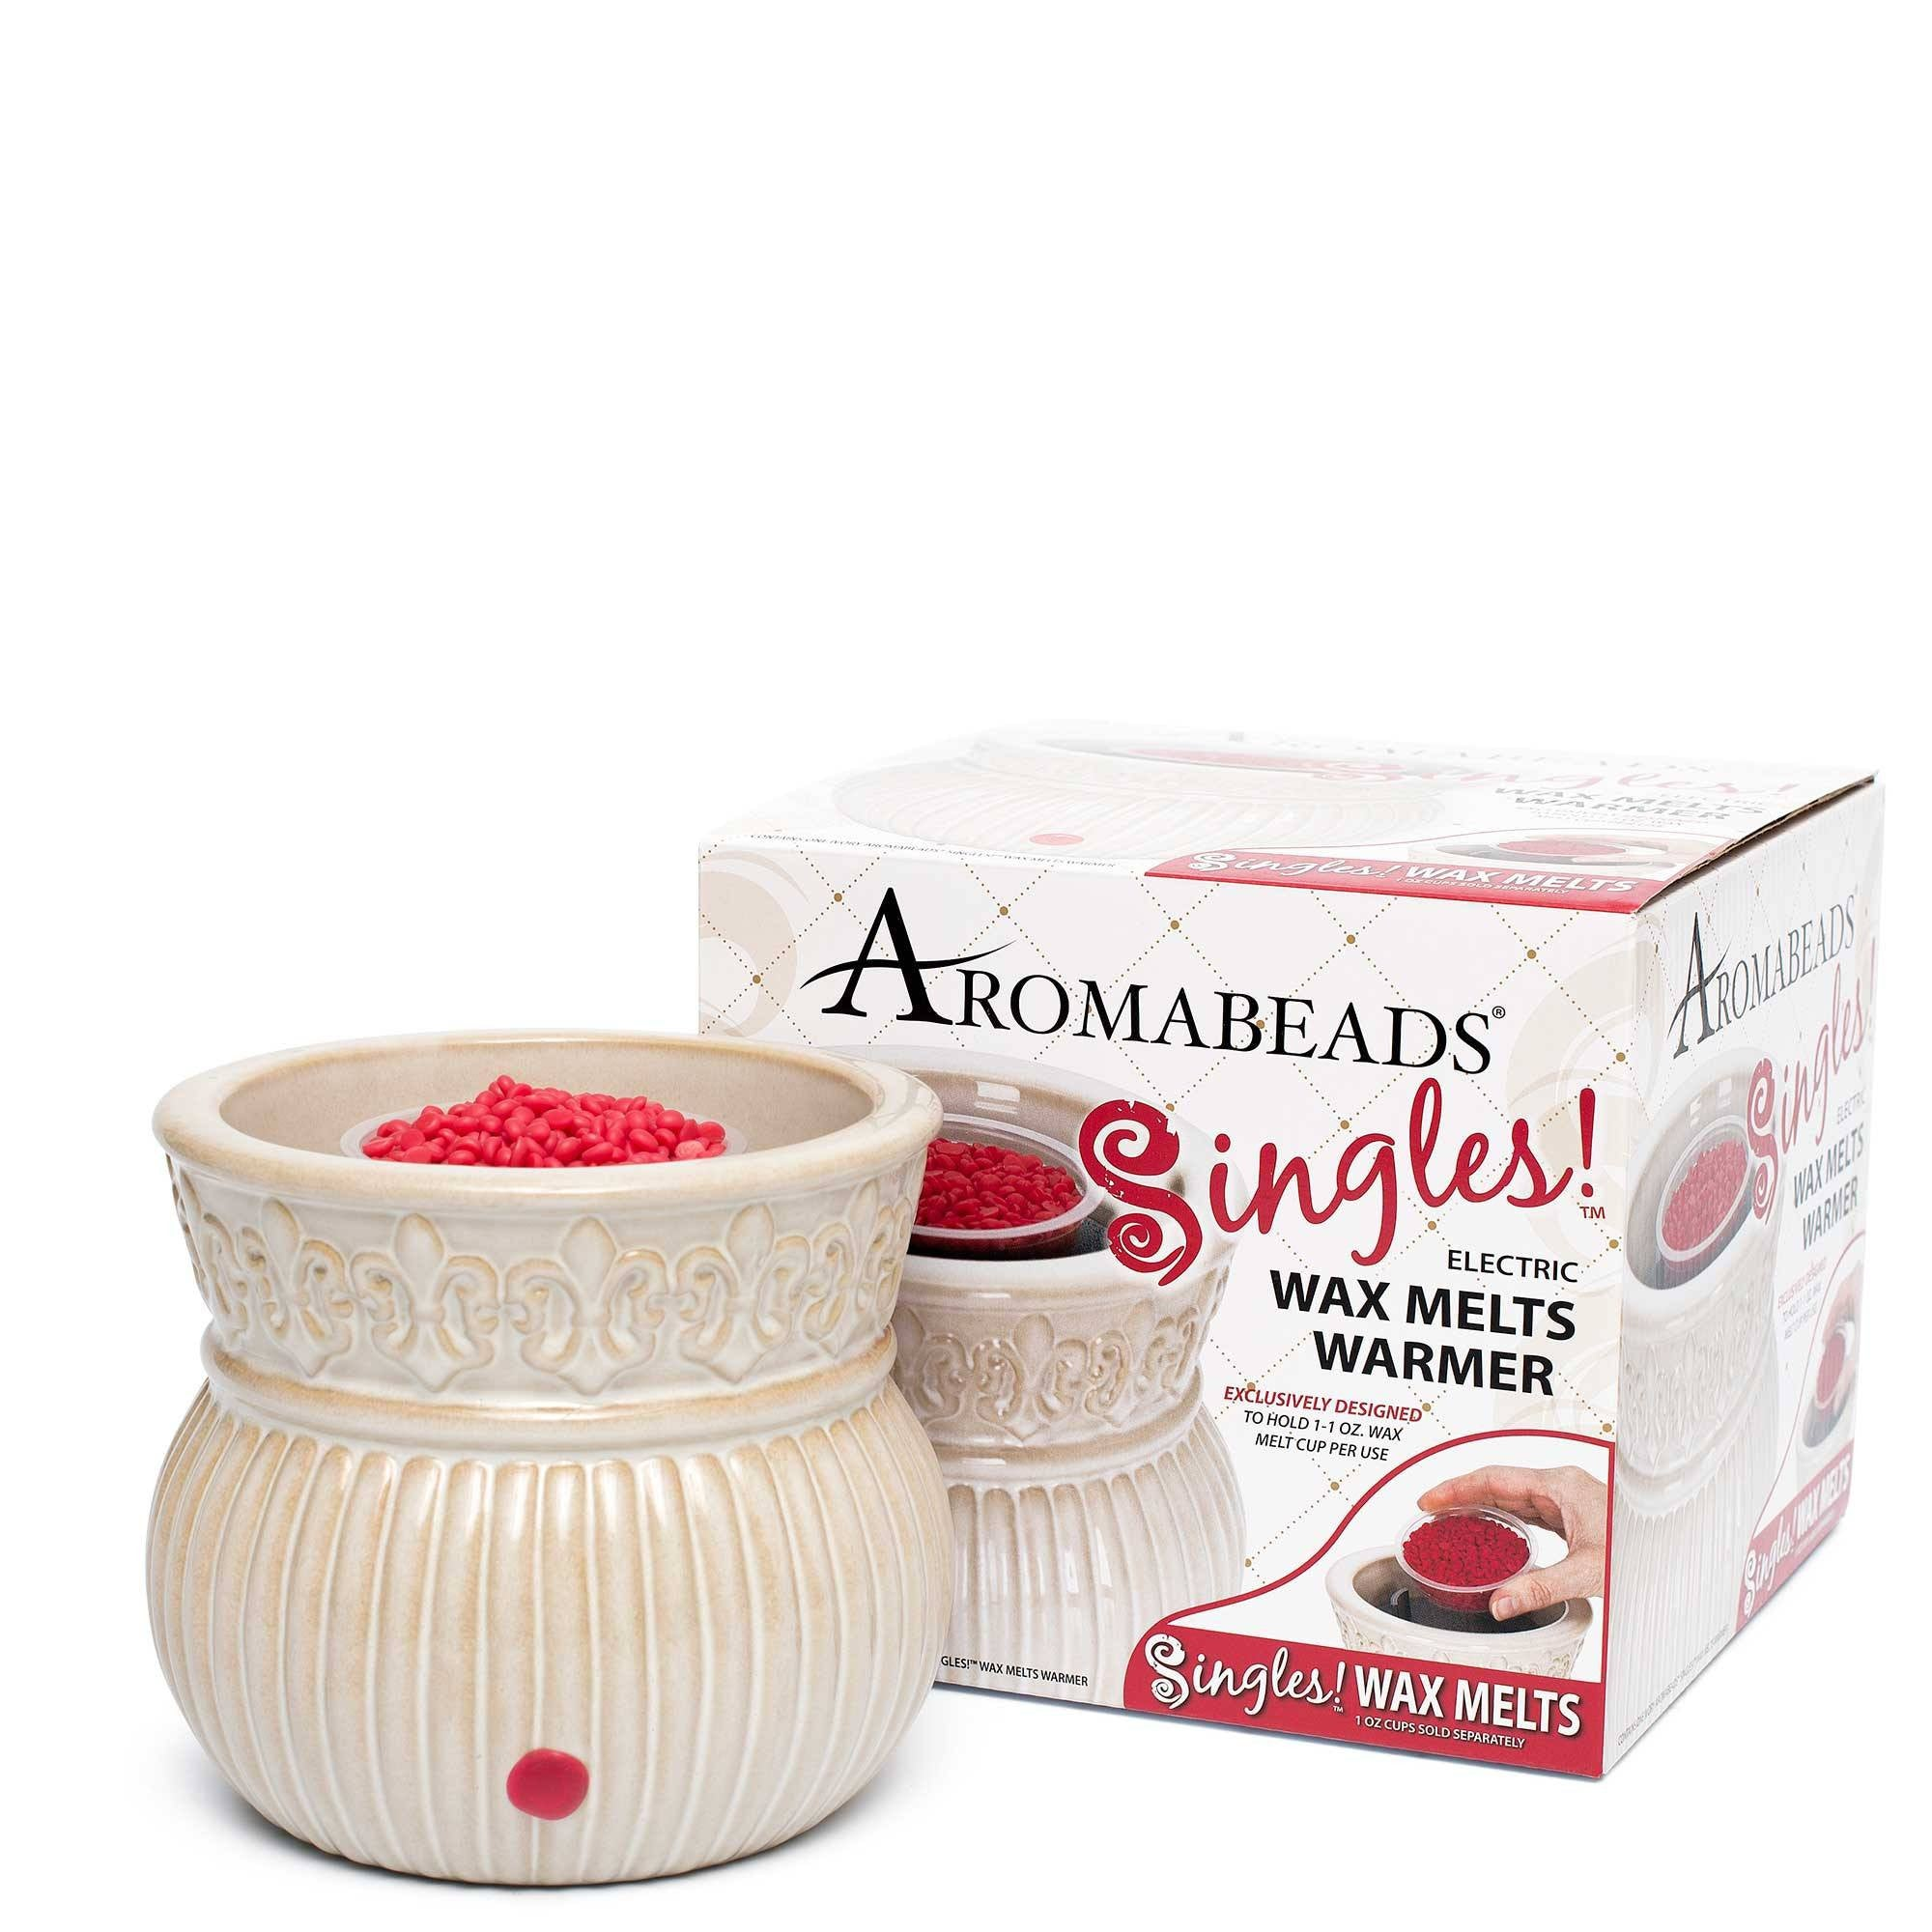 Aromabeads Singles Wild Cherry Scented Wax Melts Melts Candlemart.com $ 1.49